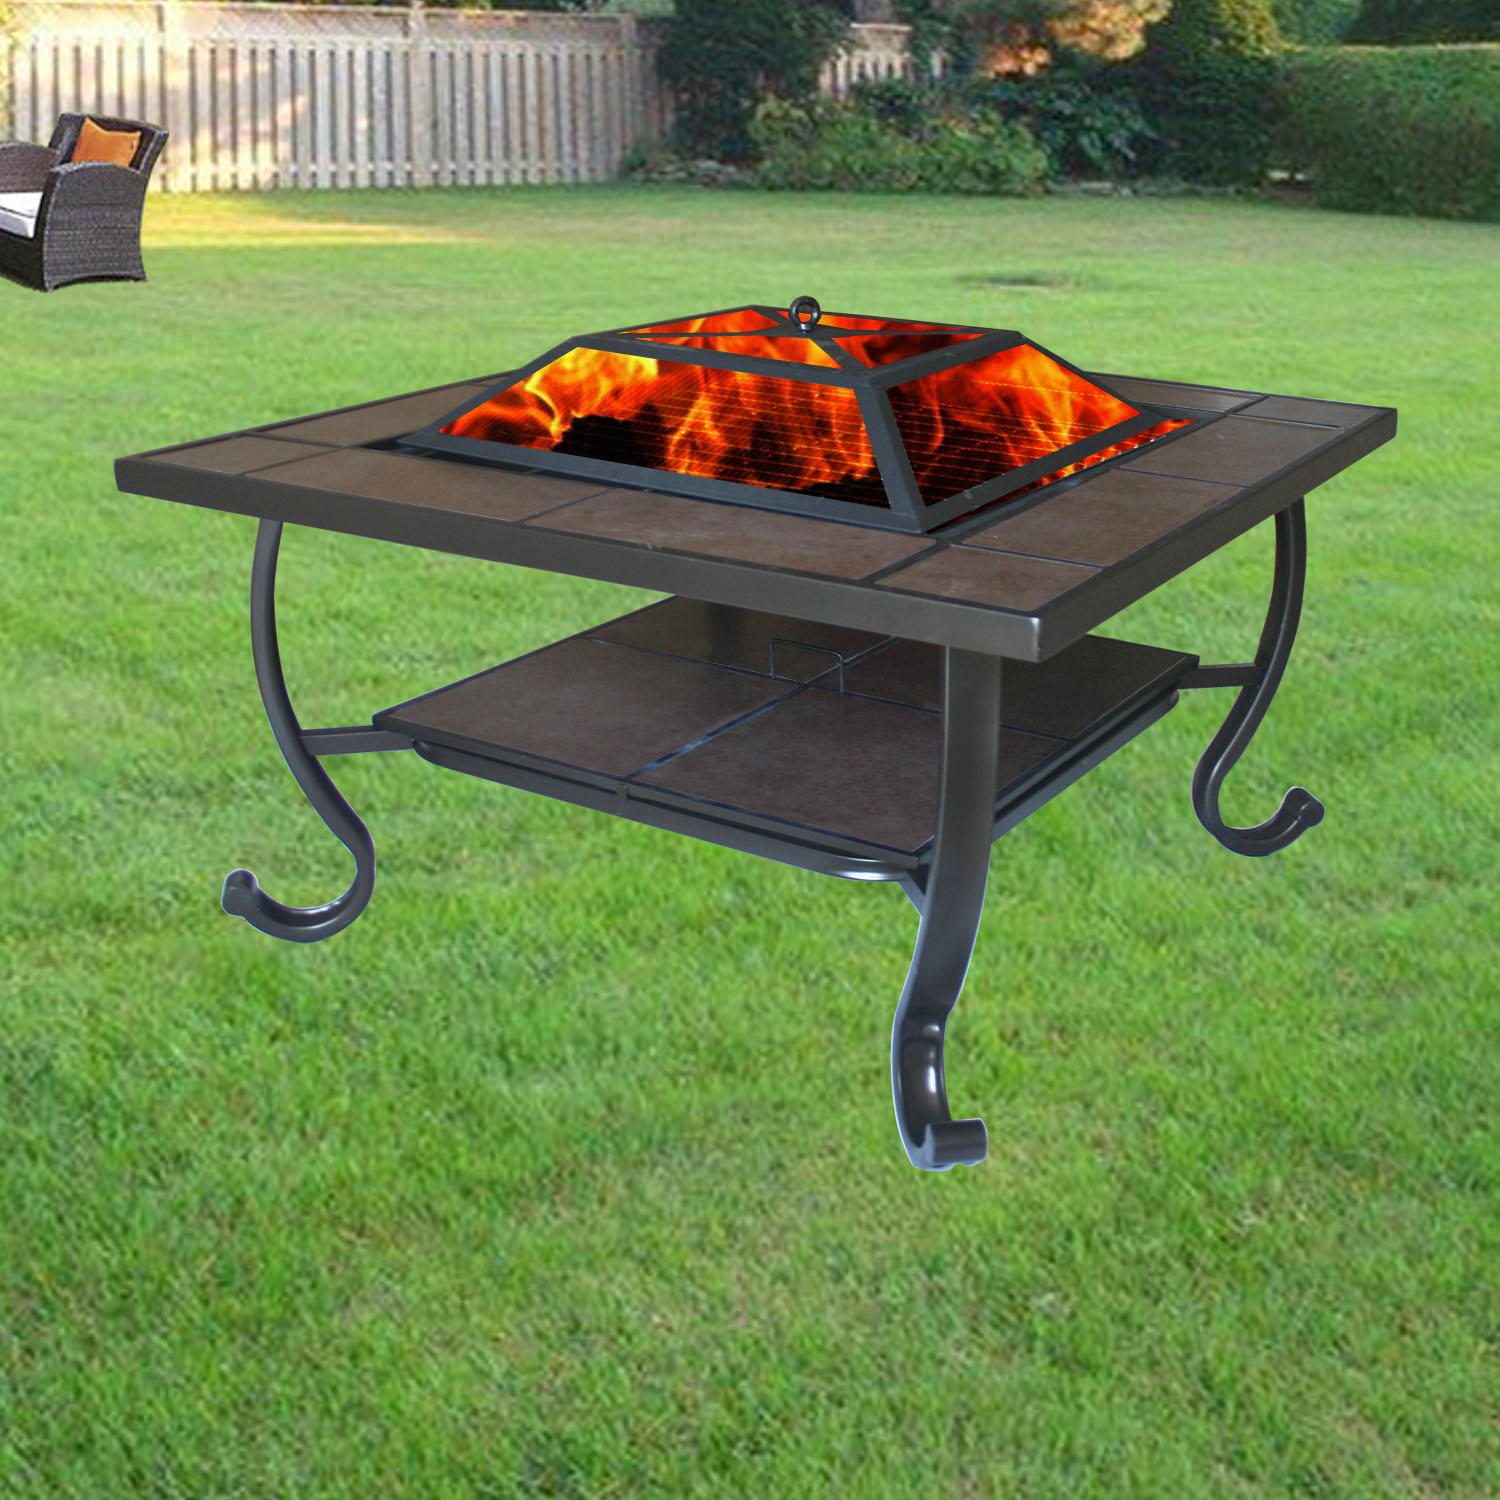 Backyard Patios With Fire Pits: Garden Firepit Patio Heater Stove Fire Pit Square Brazier